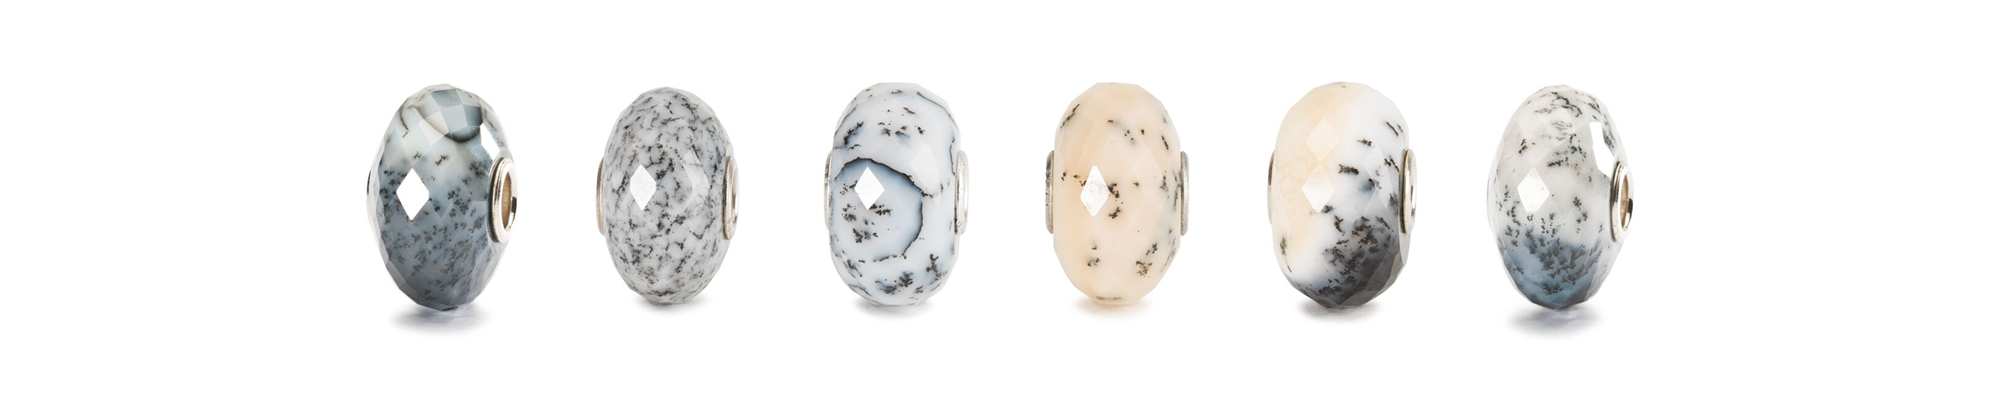 Agate Dendritic  jewellery beads showing the variety